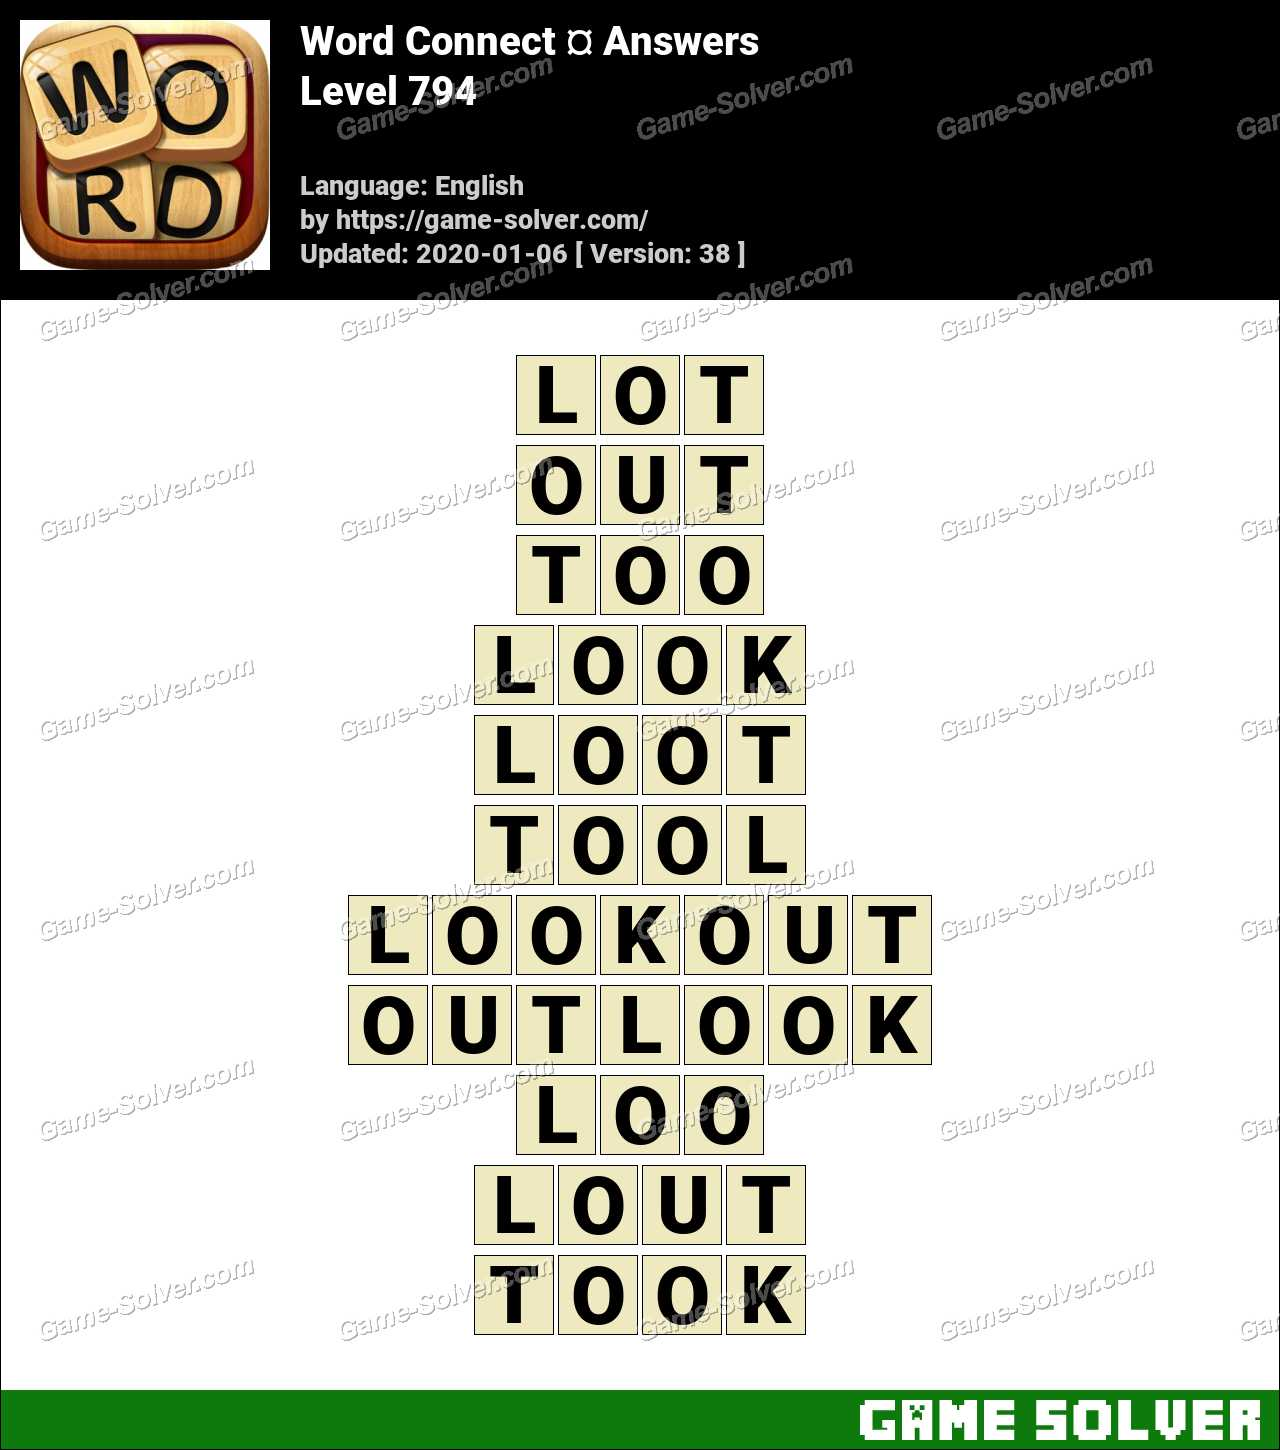 Word Connect Level 794 Answers